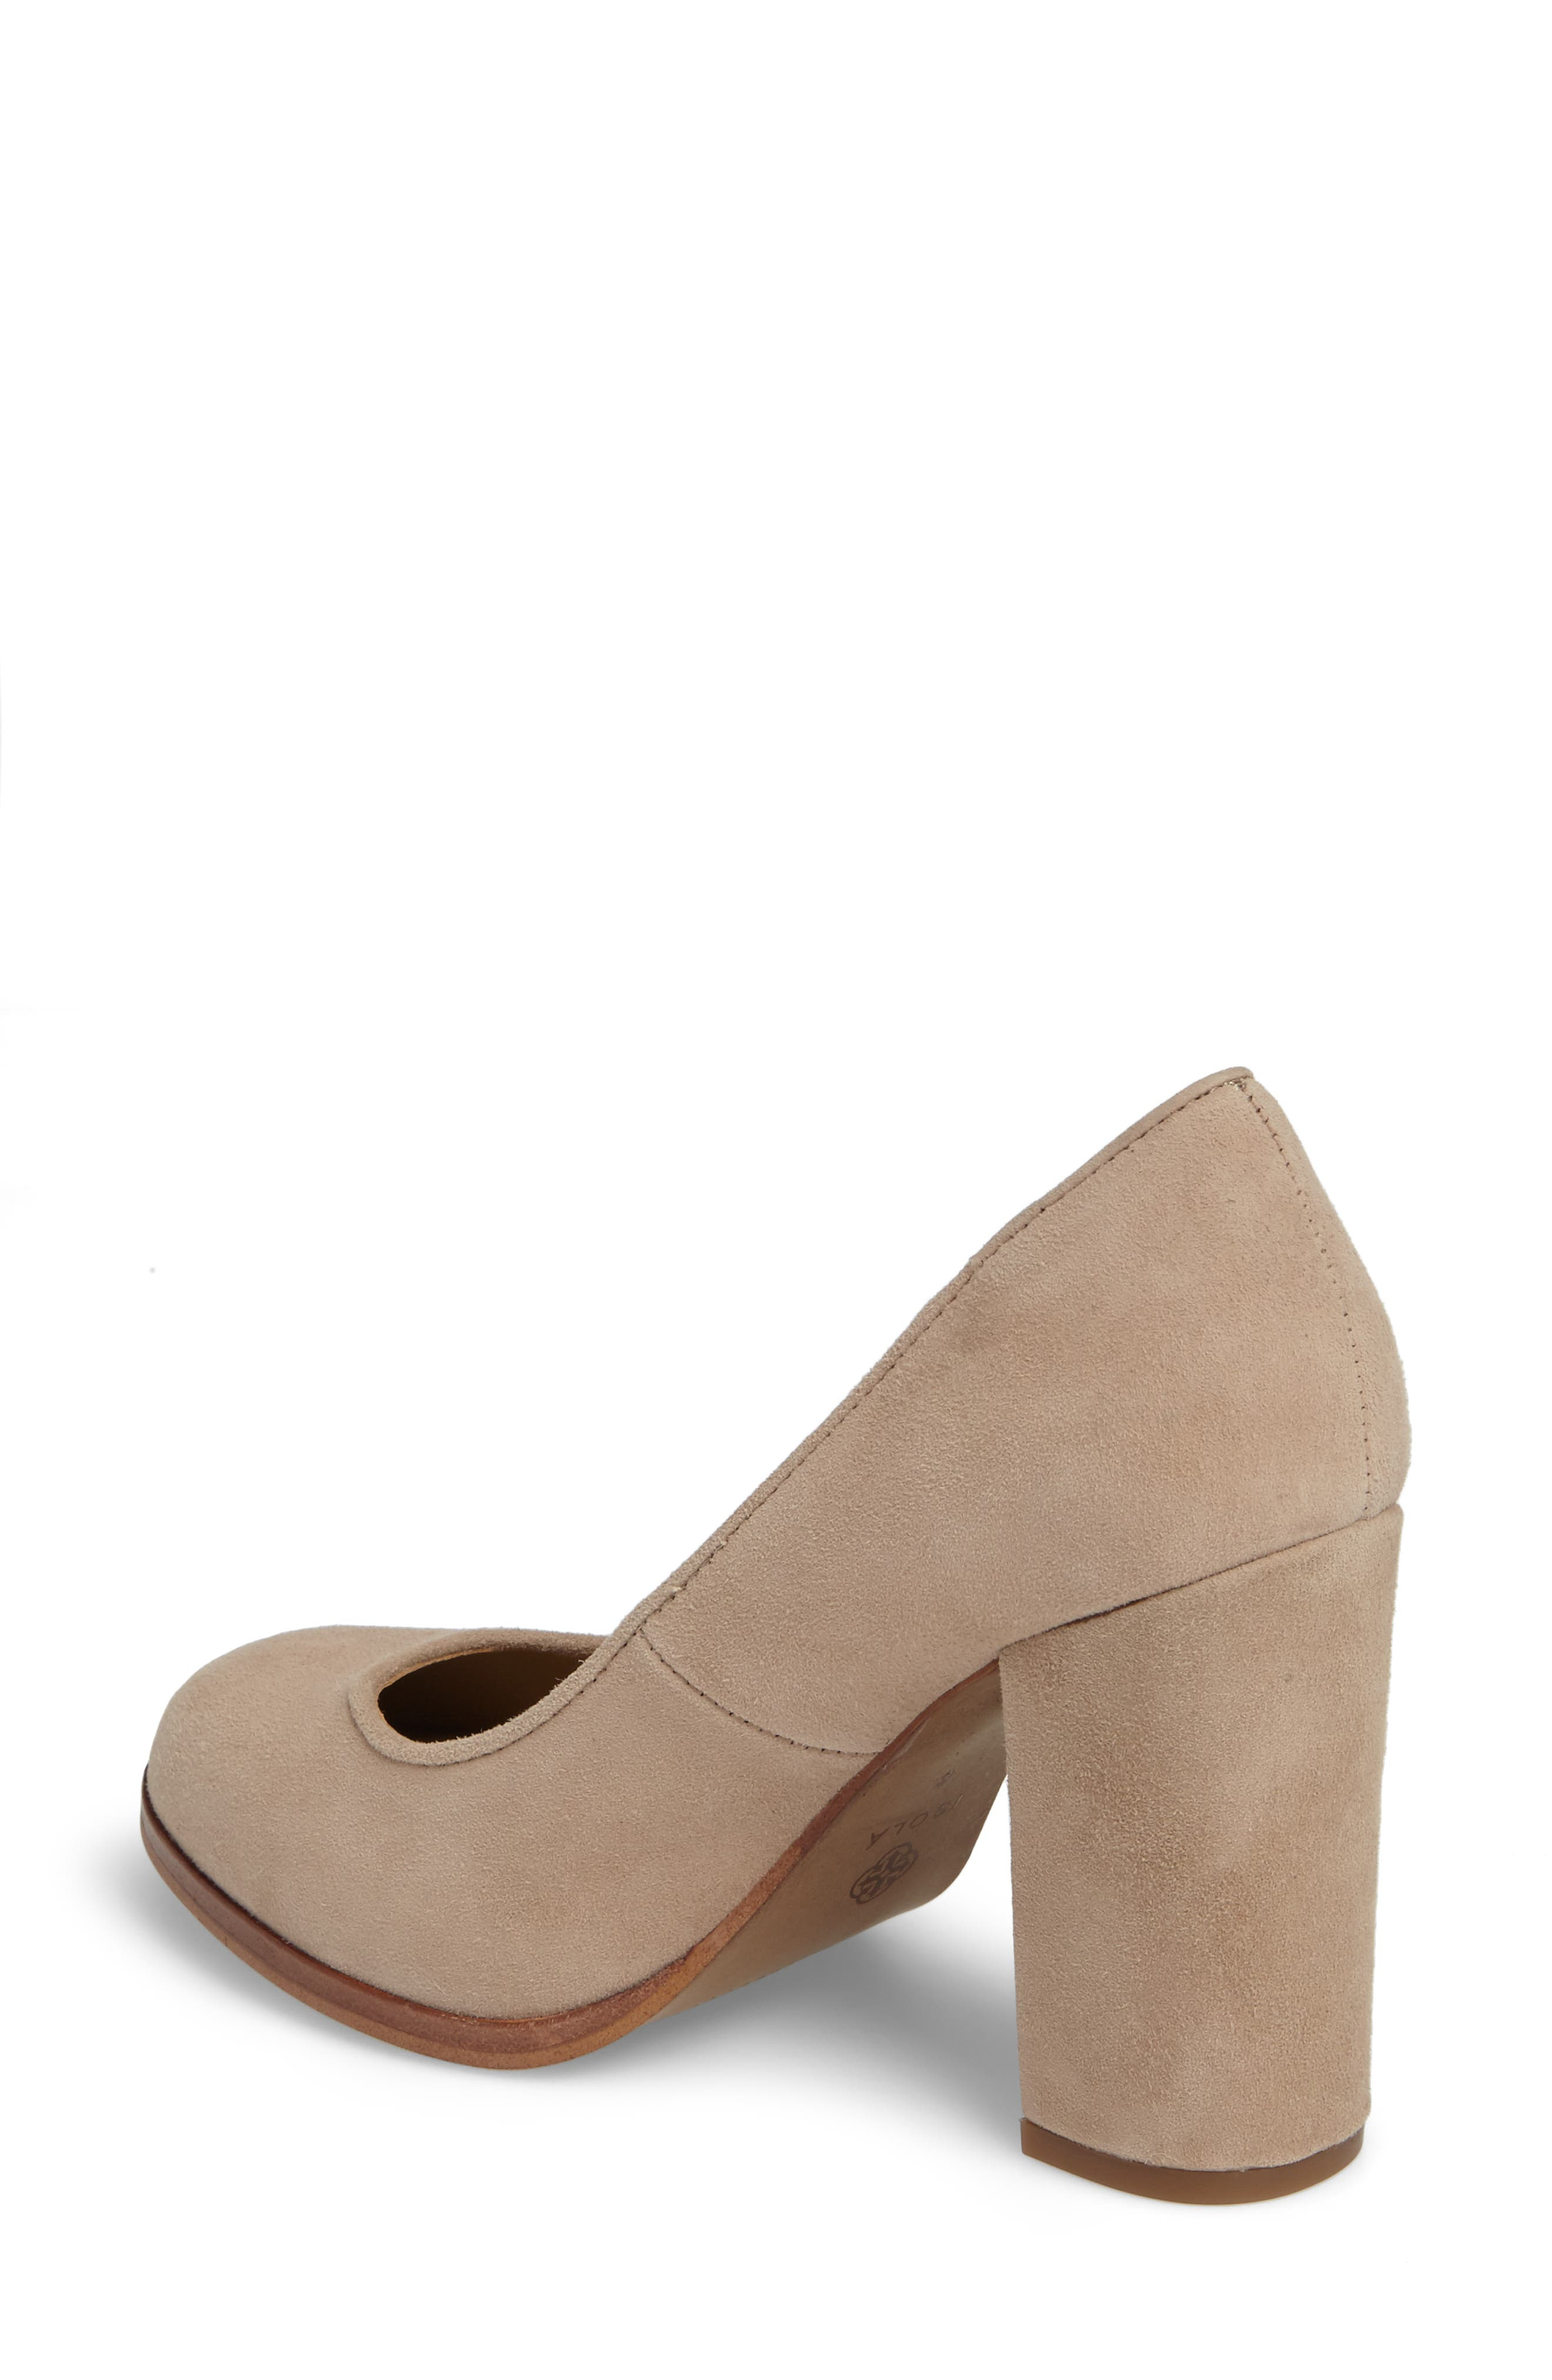 Hayley Pump,                             Alternate thumbnail 2, color,                             BAYWATER SUEDE